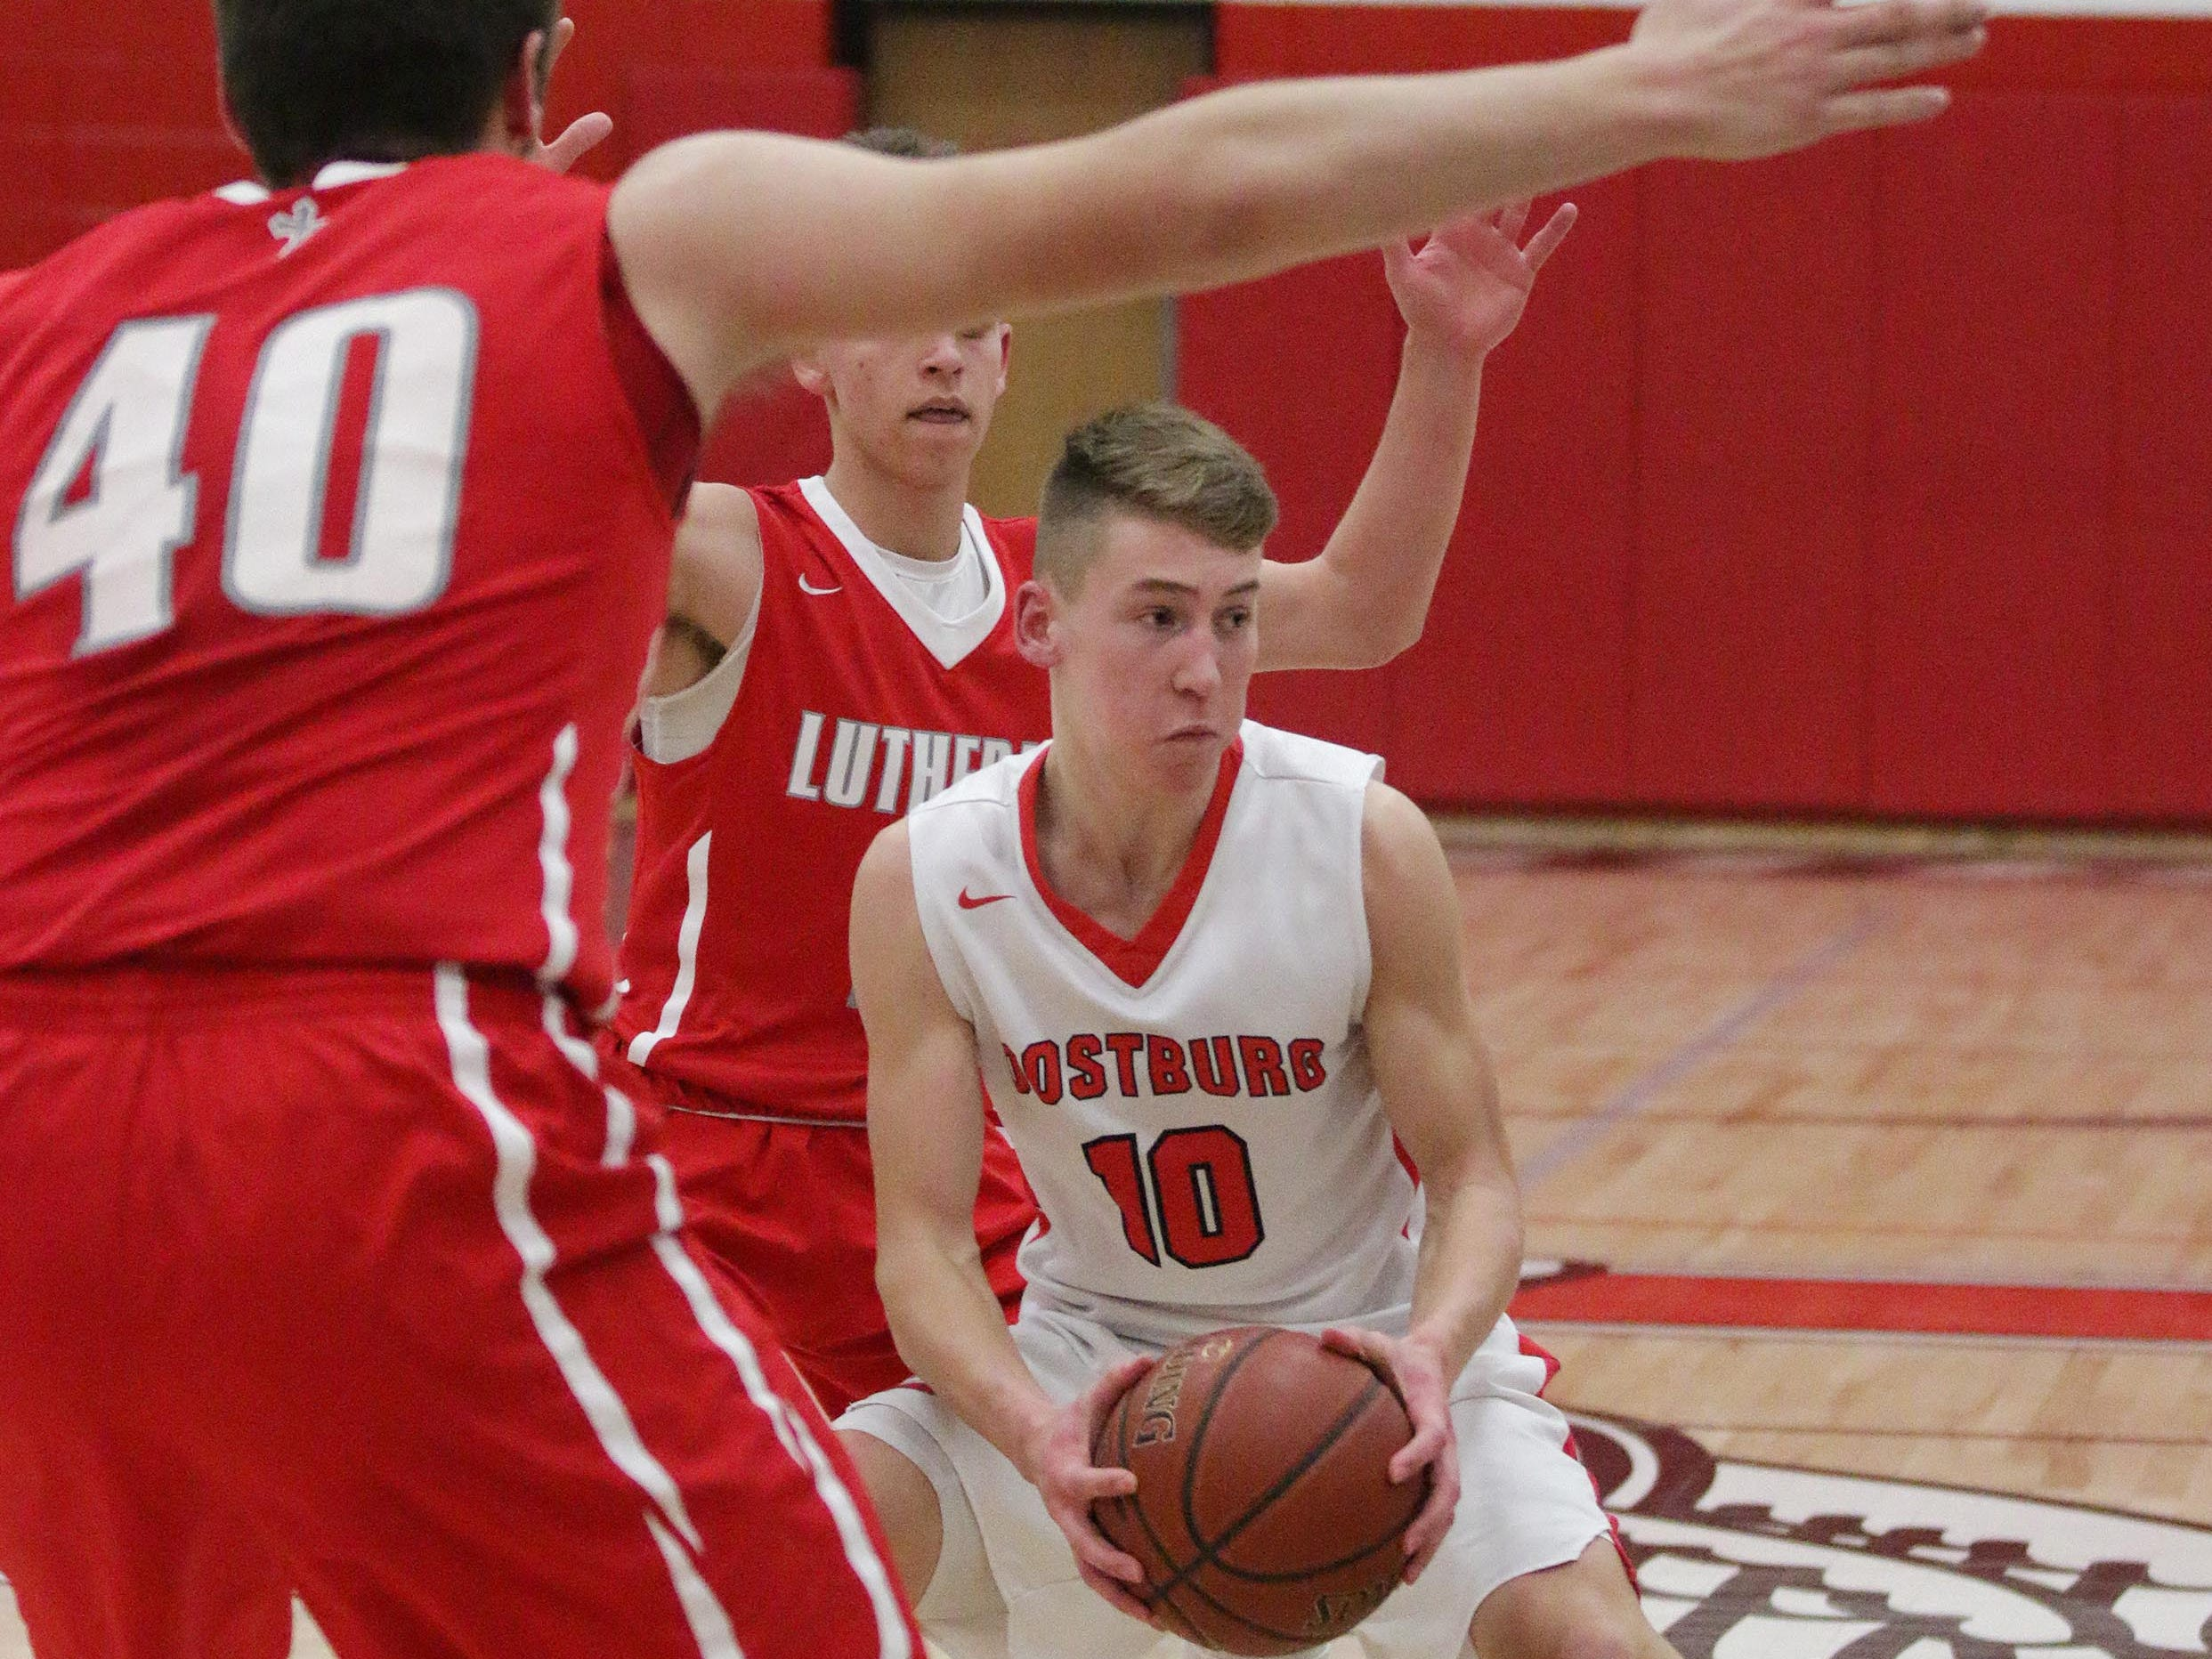 Oostburg's Braden Dirkse (10) looks to pass the ball while being surrounded by Manitowoc Lutheran players, Friday, February 8, 2019, in Oostburg, Wis. Gary C. Klein/USA TODAY NETWORK-Wisconsin